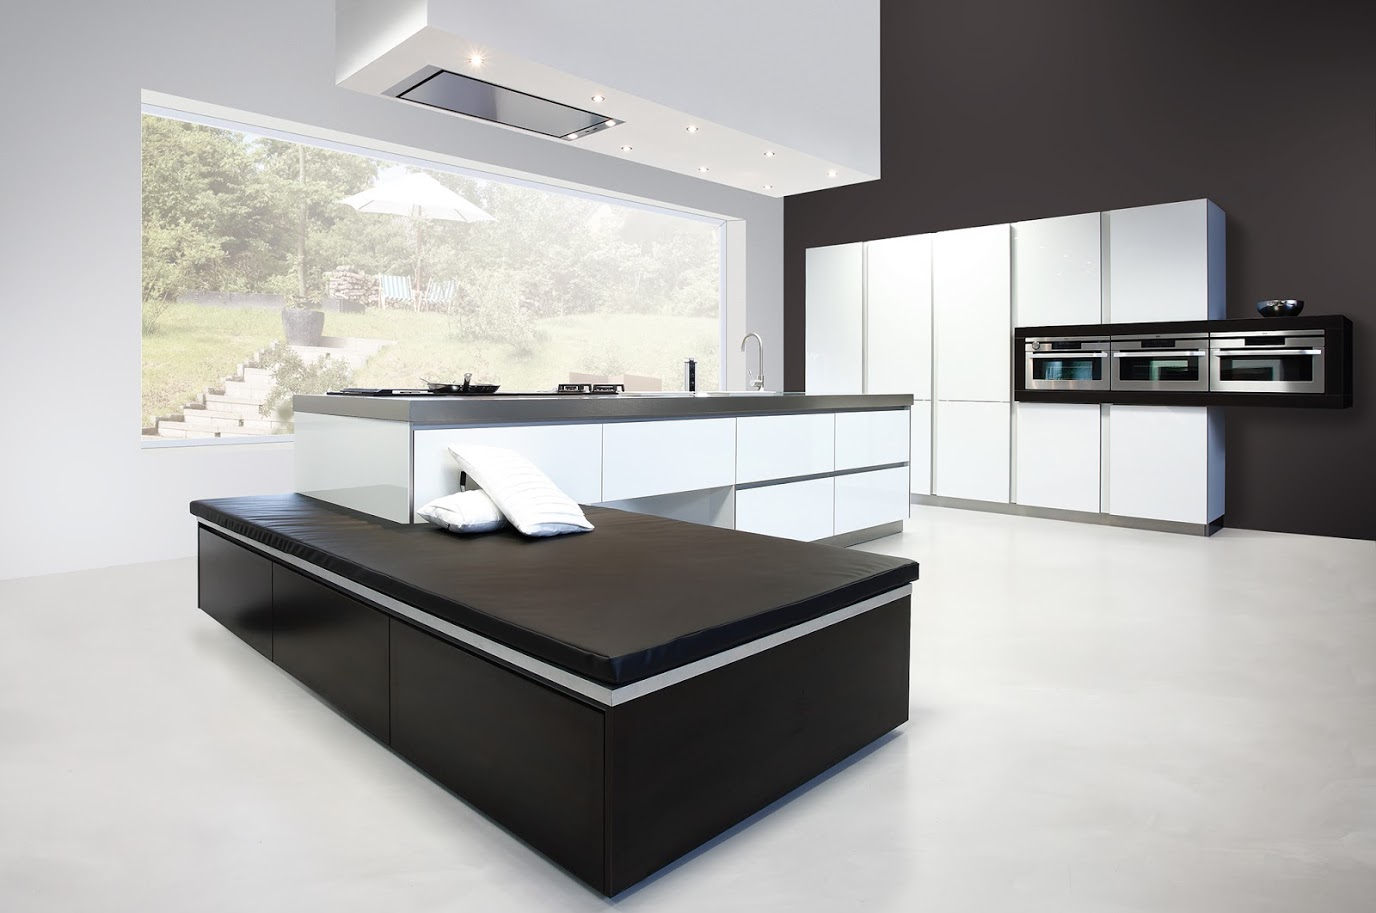 k chen cocinas mallorca einbauk che landhausk che k chenm bel. Black Bedroom Furniture Sets. Home Design Ideas